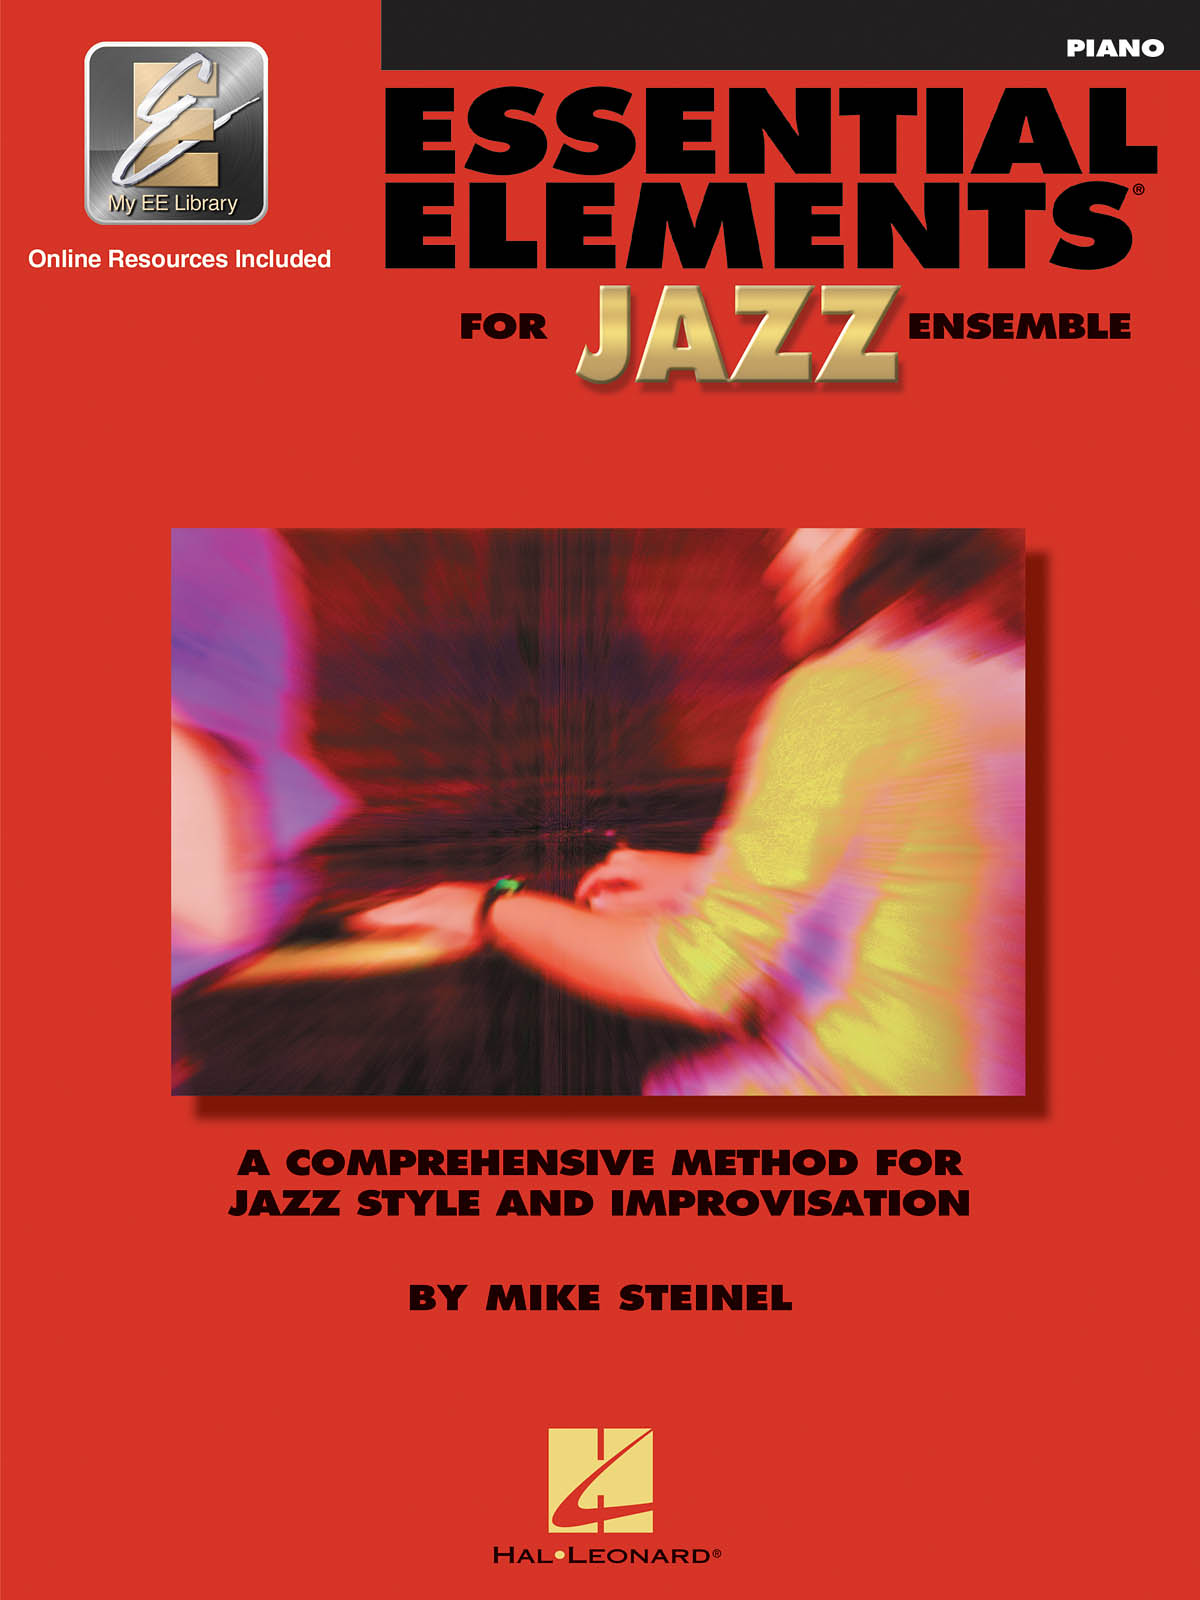 Essential Elements for Jazz Ensemble (Piano): Jazz Ensemble: Book & Audio